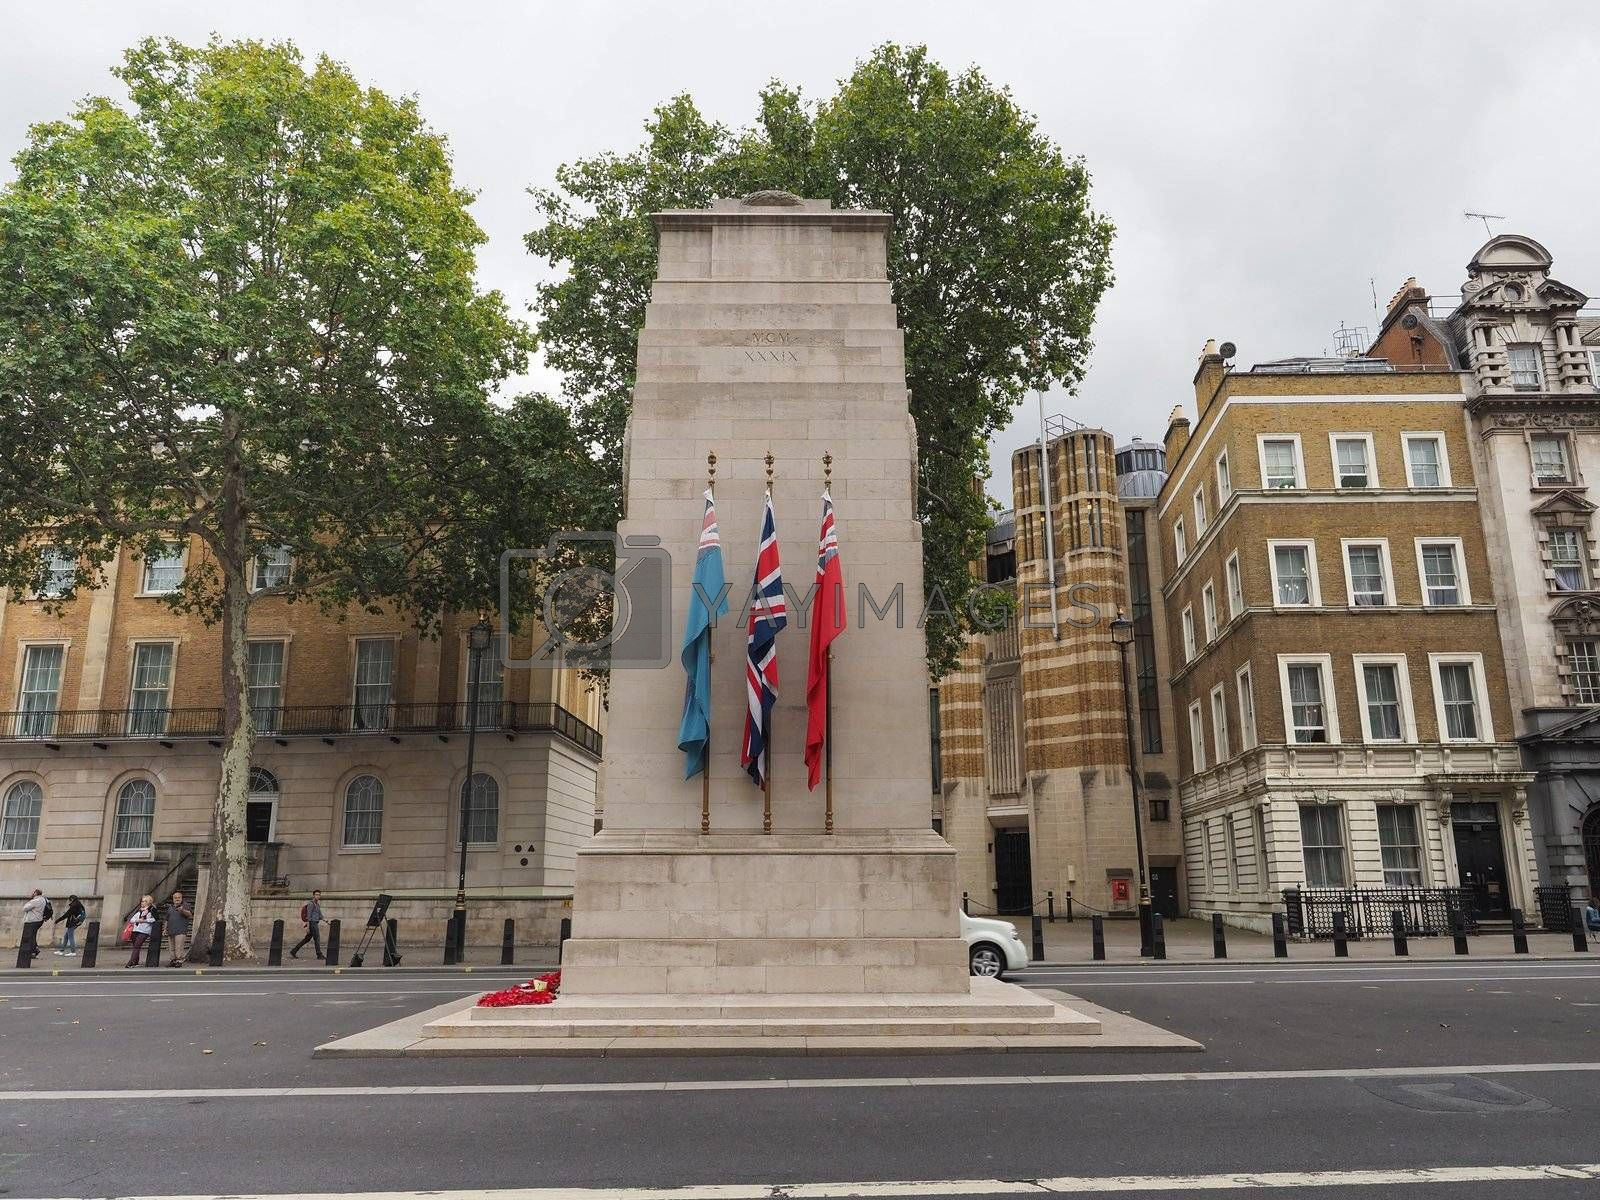 LONDON, UK - CIRCA SEPTEMBER 2019: Cenotaph war memorial to commemorate the deads of all wars